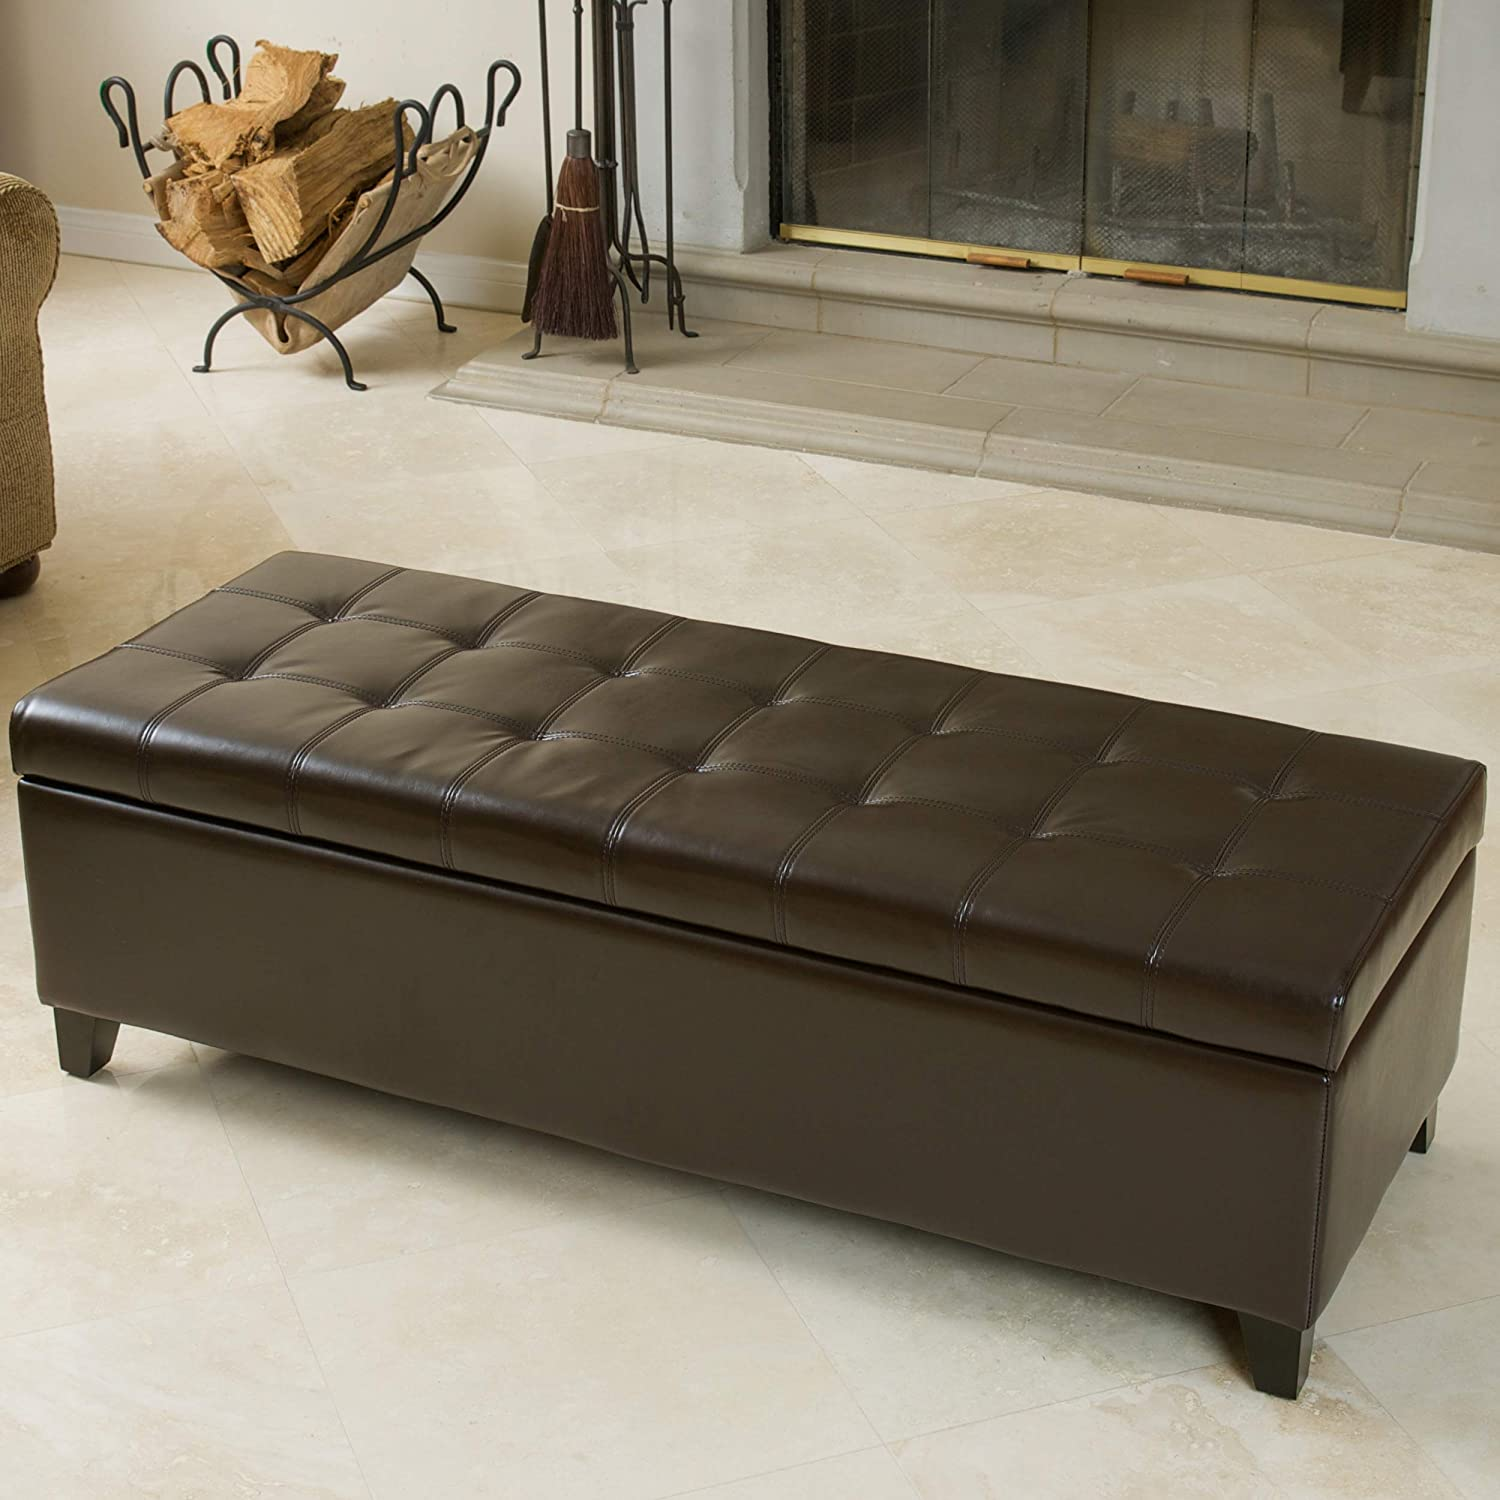 Christopher Knight Home 233716 Santa Rosa Brown Tufted Leather Storage Ottoman Bench